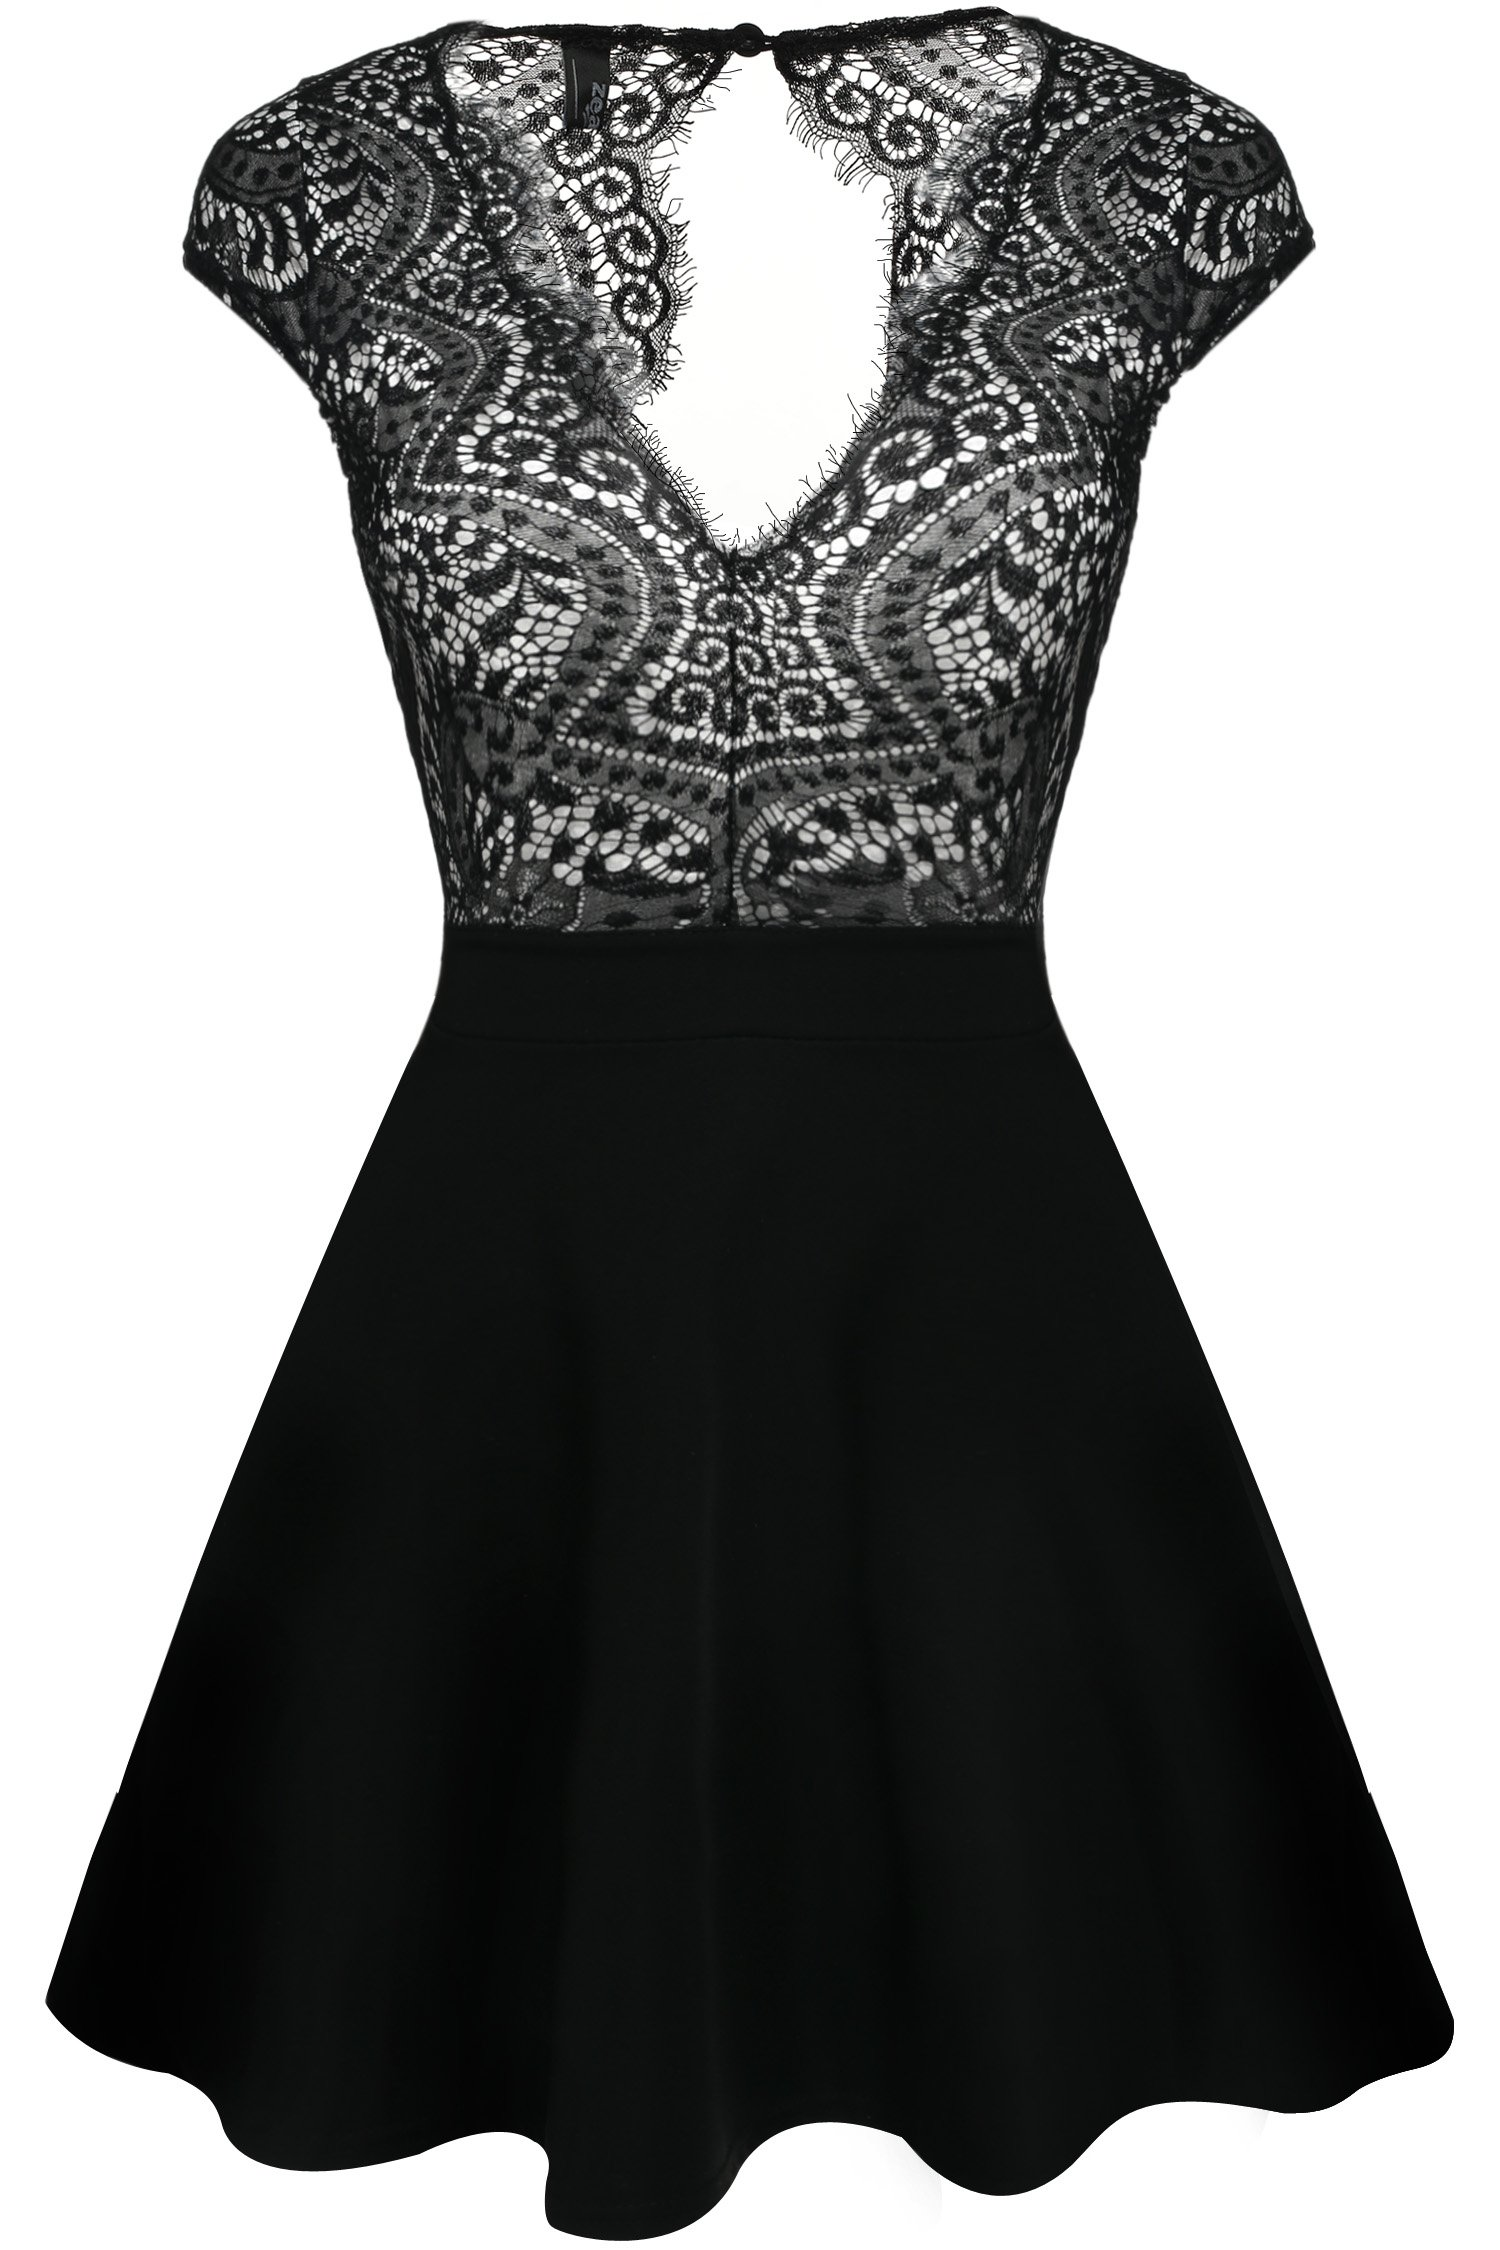 Zeagoo Women's V Neck Lace Open Back Nude Illusion Skater Cocktail Party Dress Black Small by Zeagoo (Image #2)